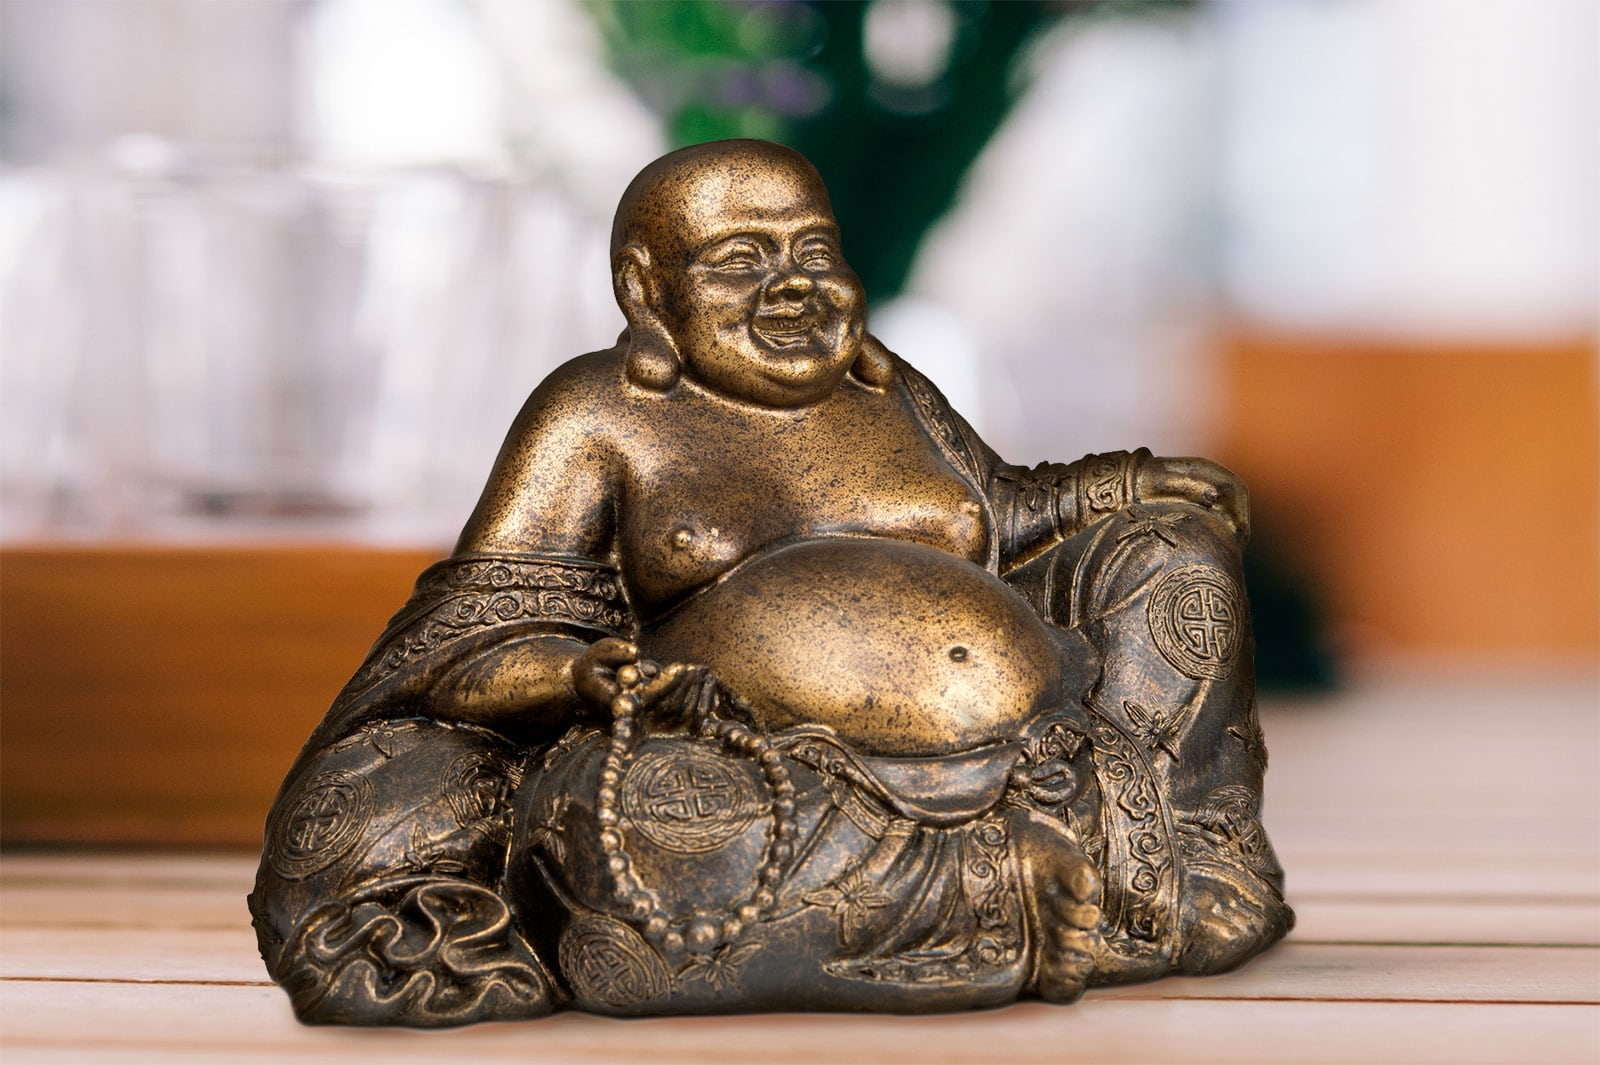 The laughing and chubby version of Buddha was first introduced in China. This is because in traditional China, being chubby signified good health and fortune.